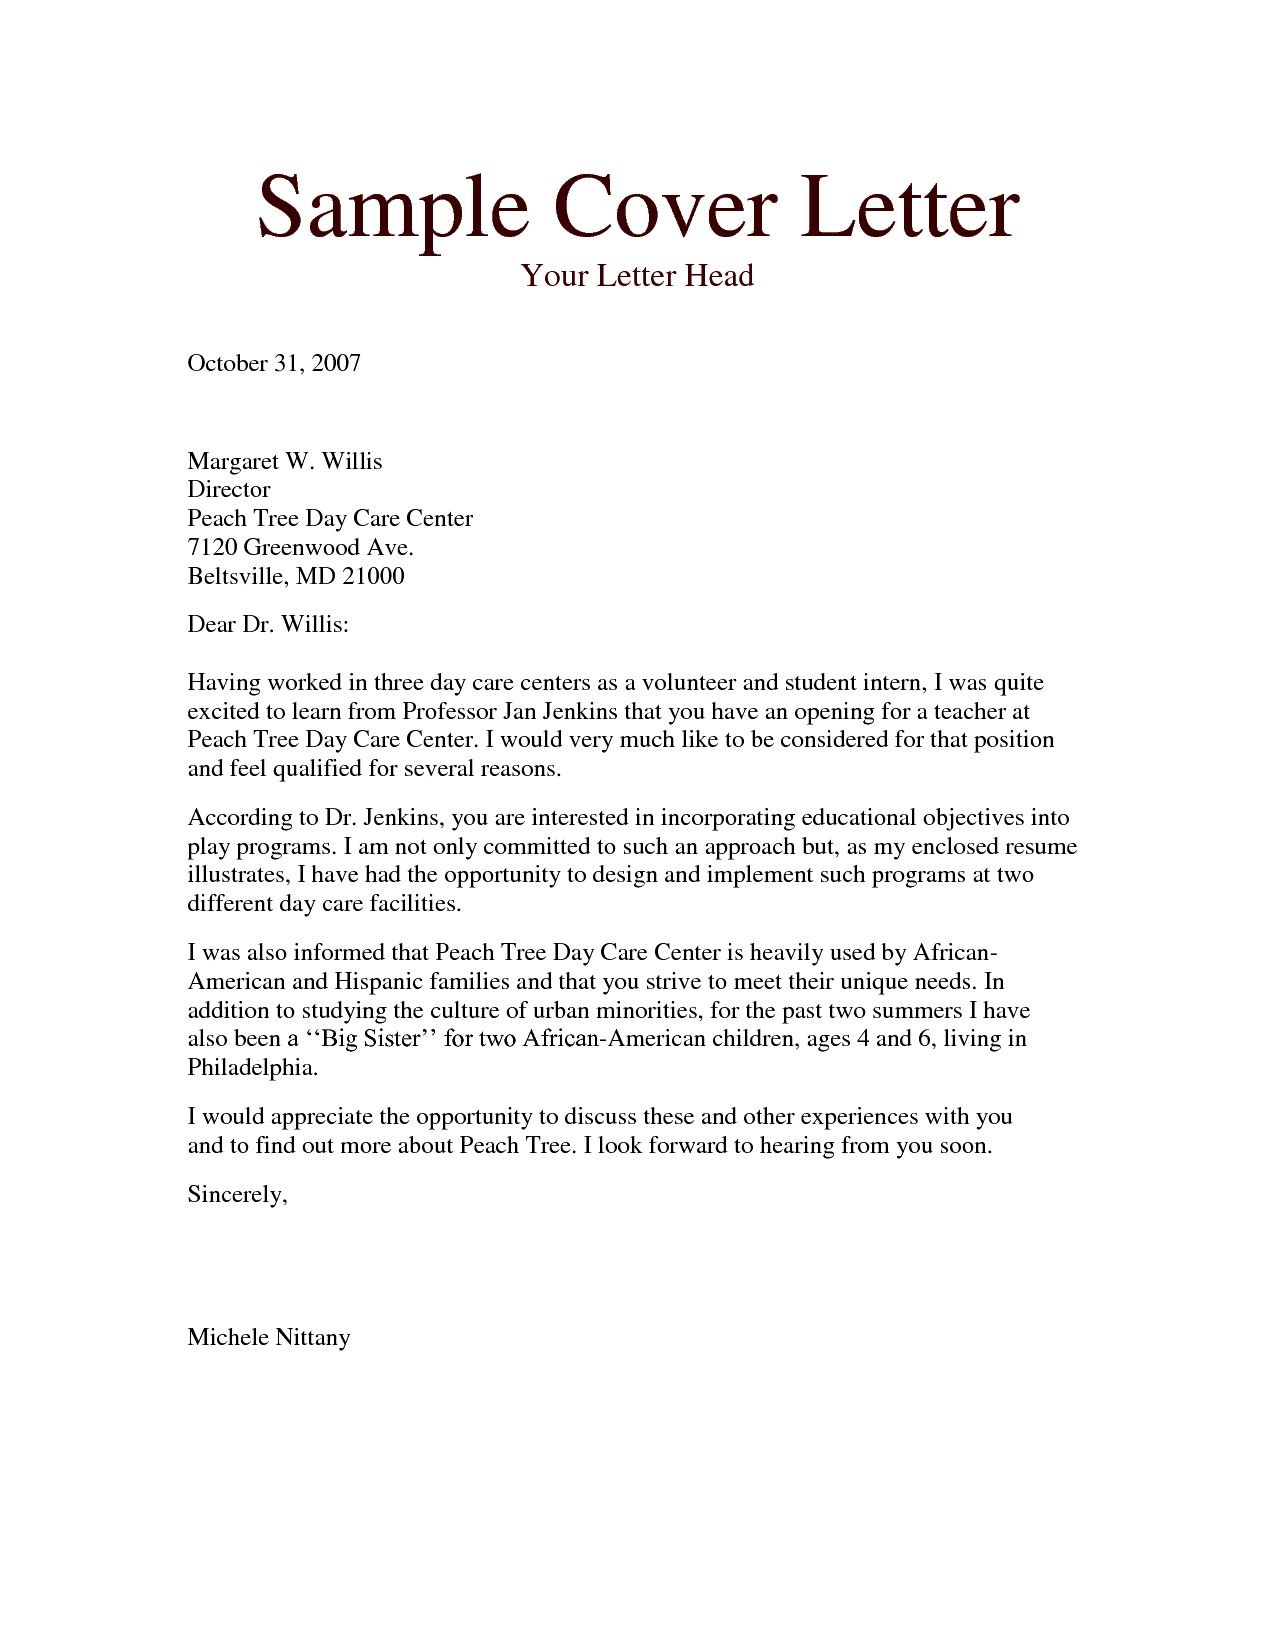 Cover Letter For Teaching Job Sample Cover Letters For Teaching